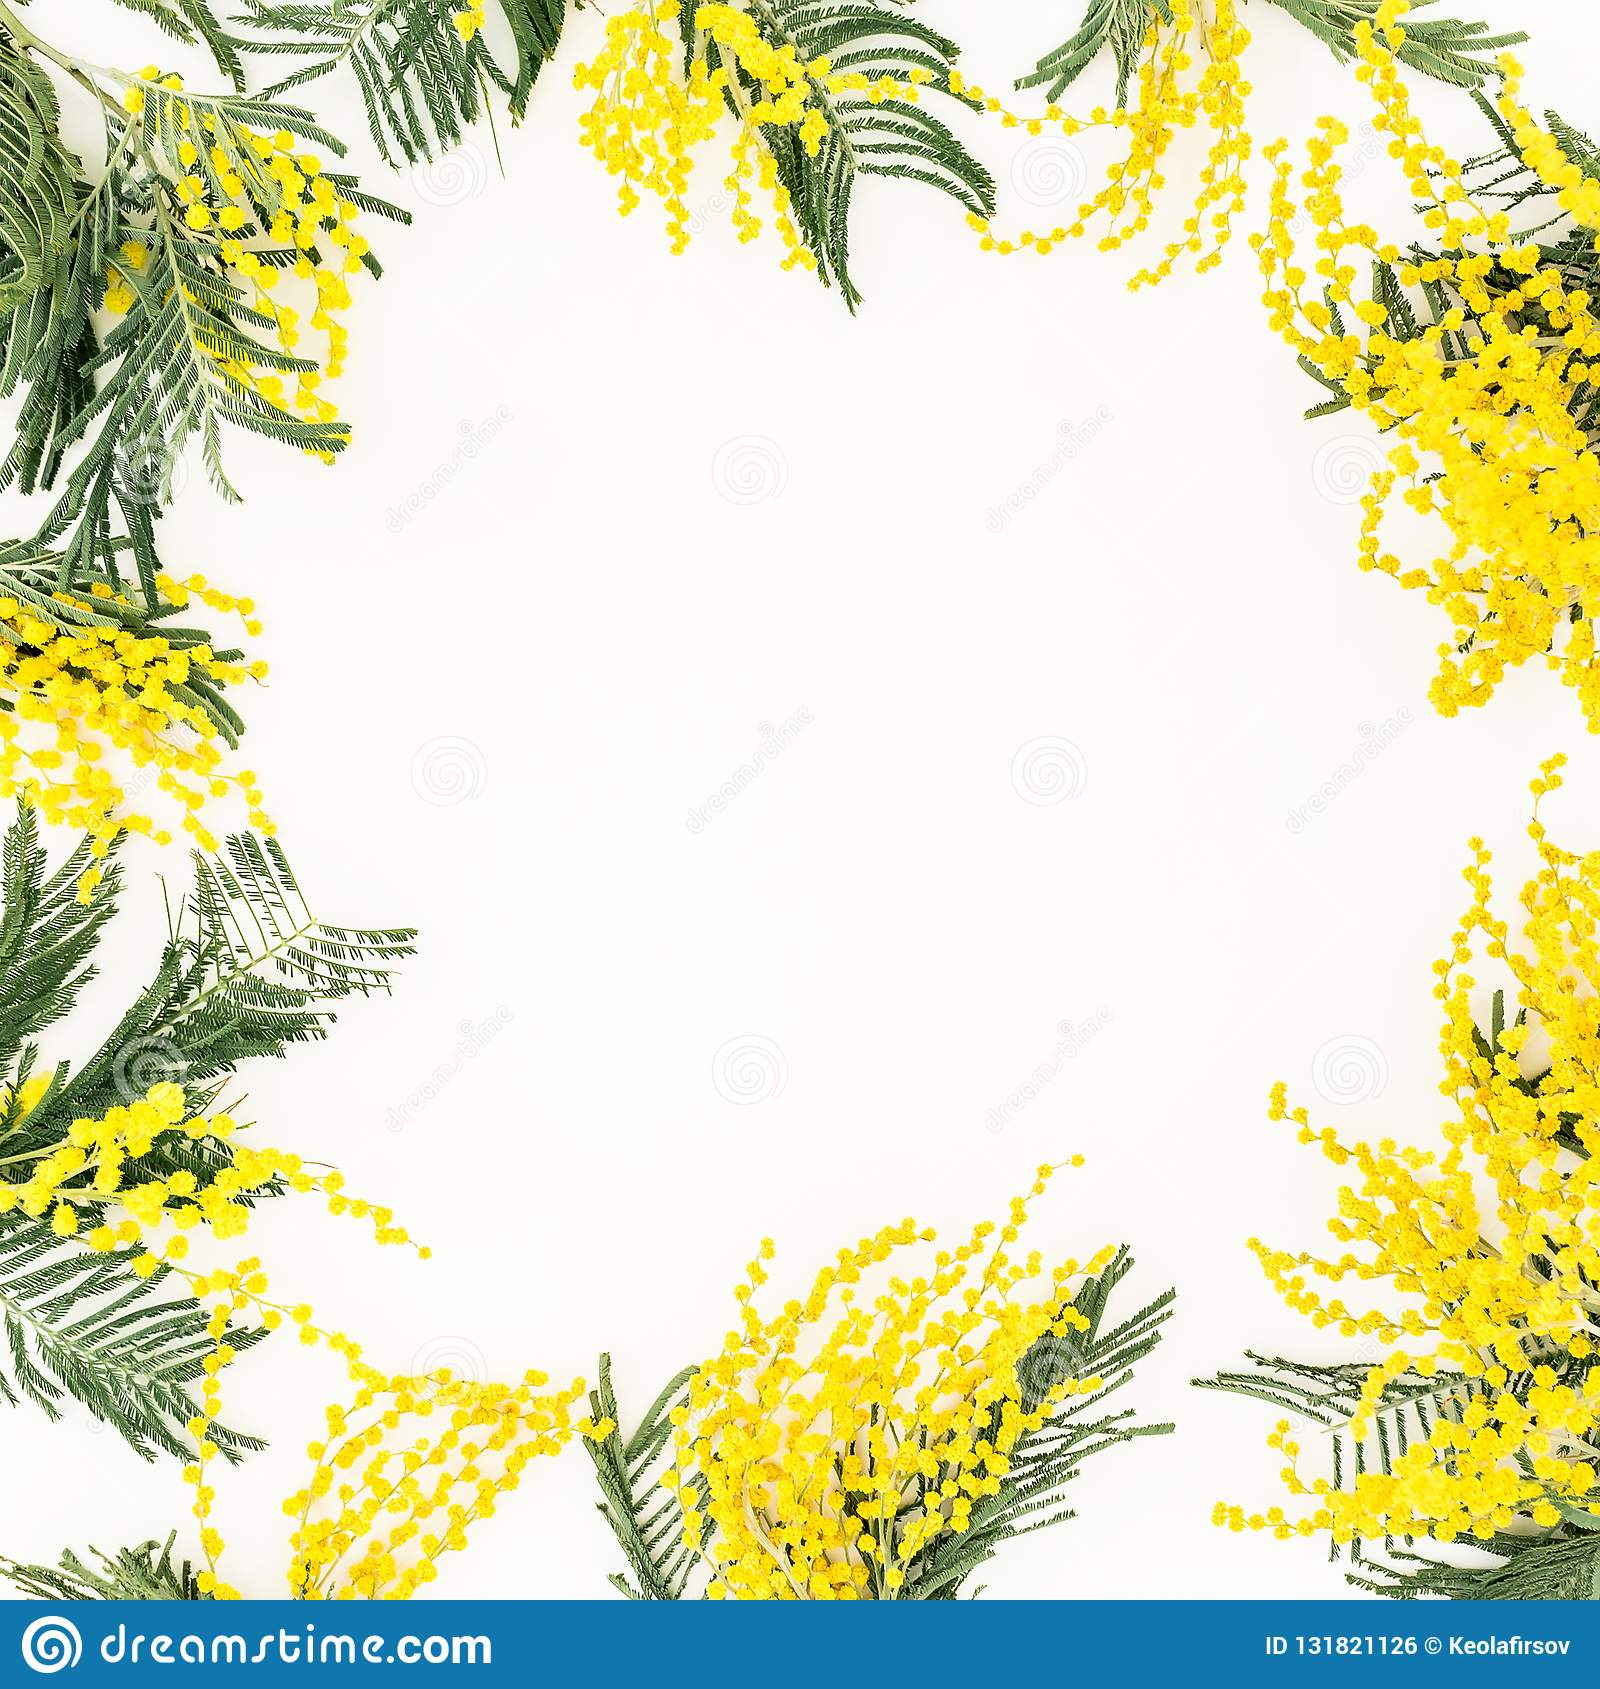 Floral frame of yellow mimosa branches on white background. Flowers of woman day. Flat lay, top view